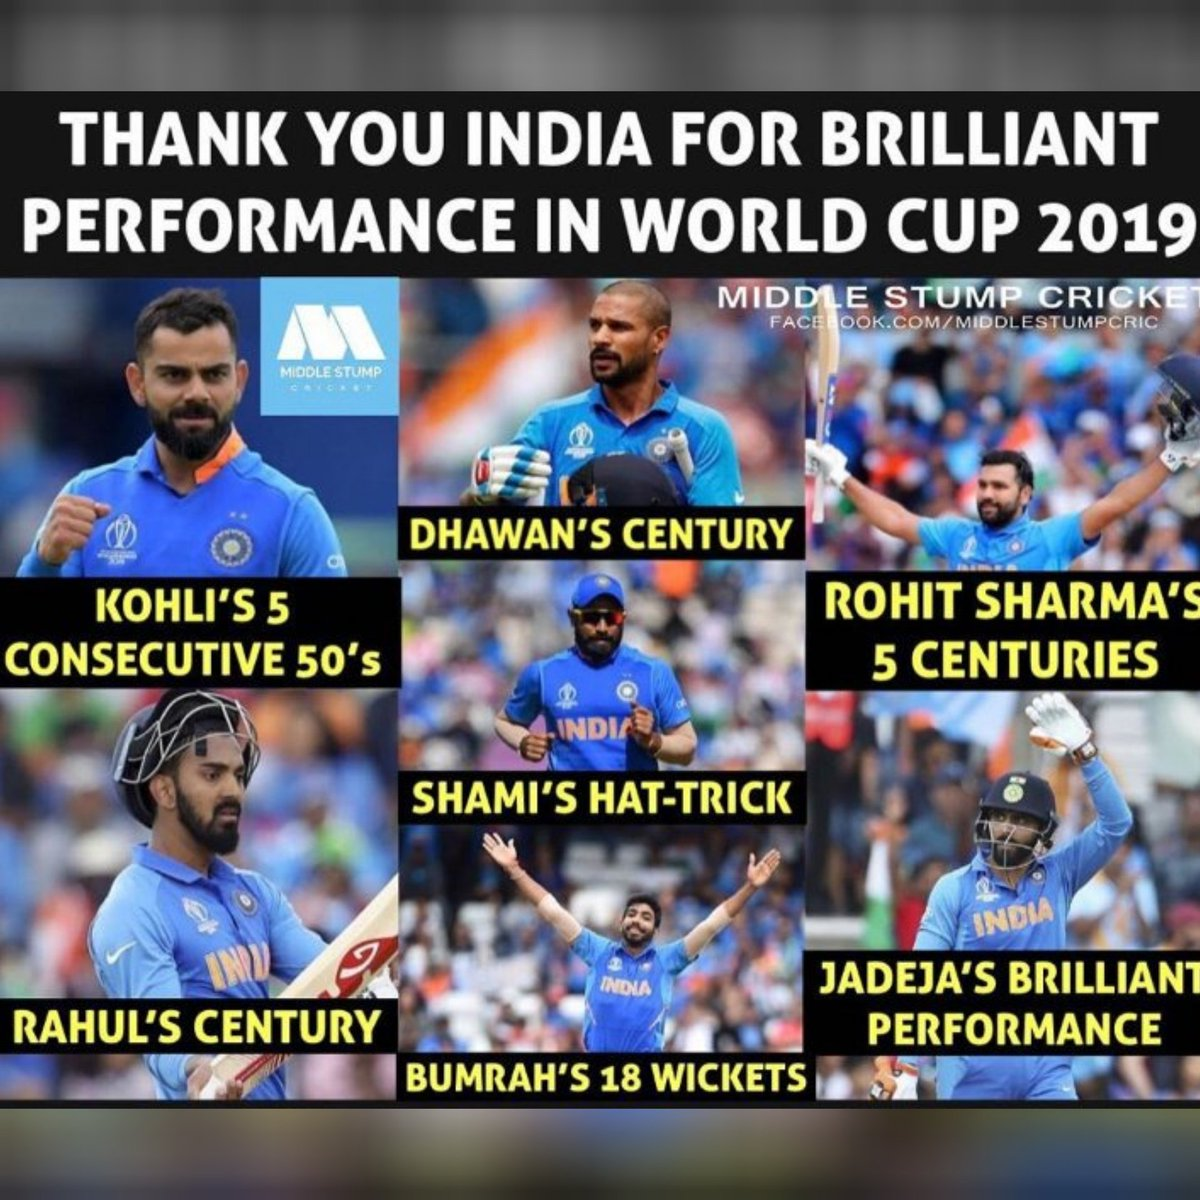 Thank you India for brilliant performance in #wc19 <br>http://pic.twitter.com/tAPMUD421g